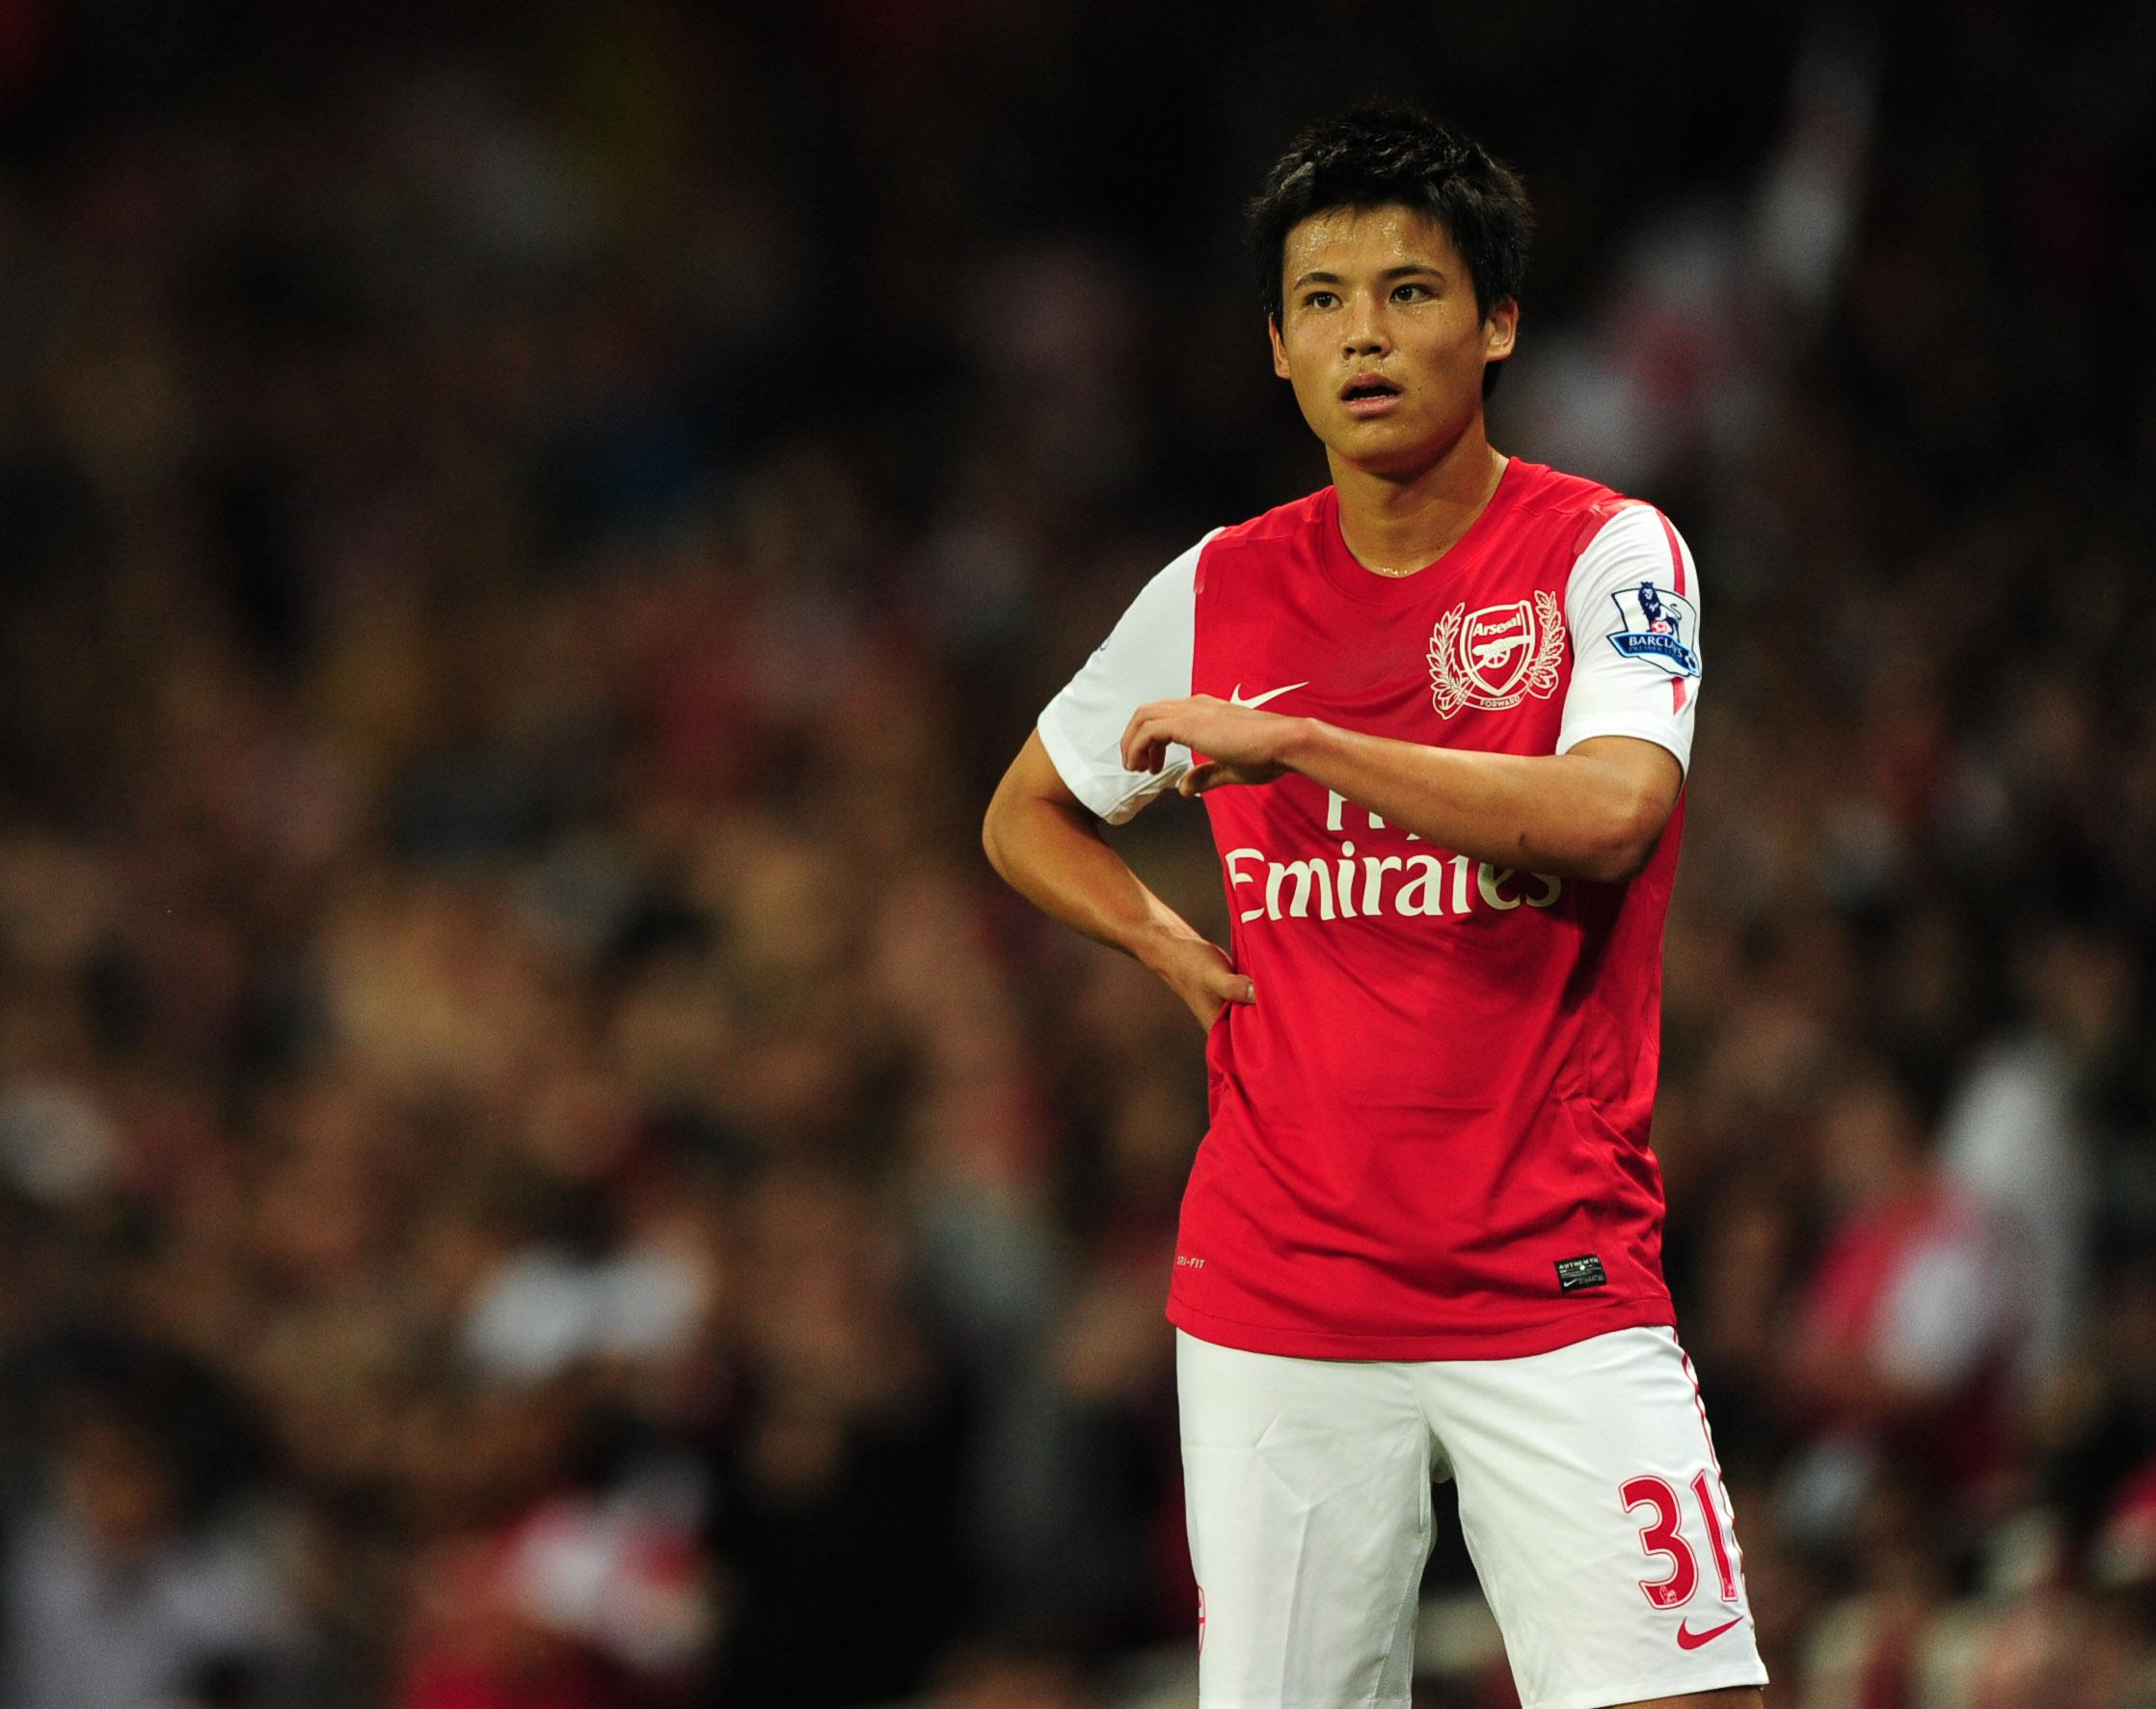 A rare sighting of Miyaichi in an Arsenal kit